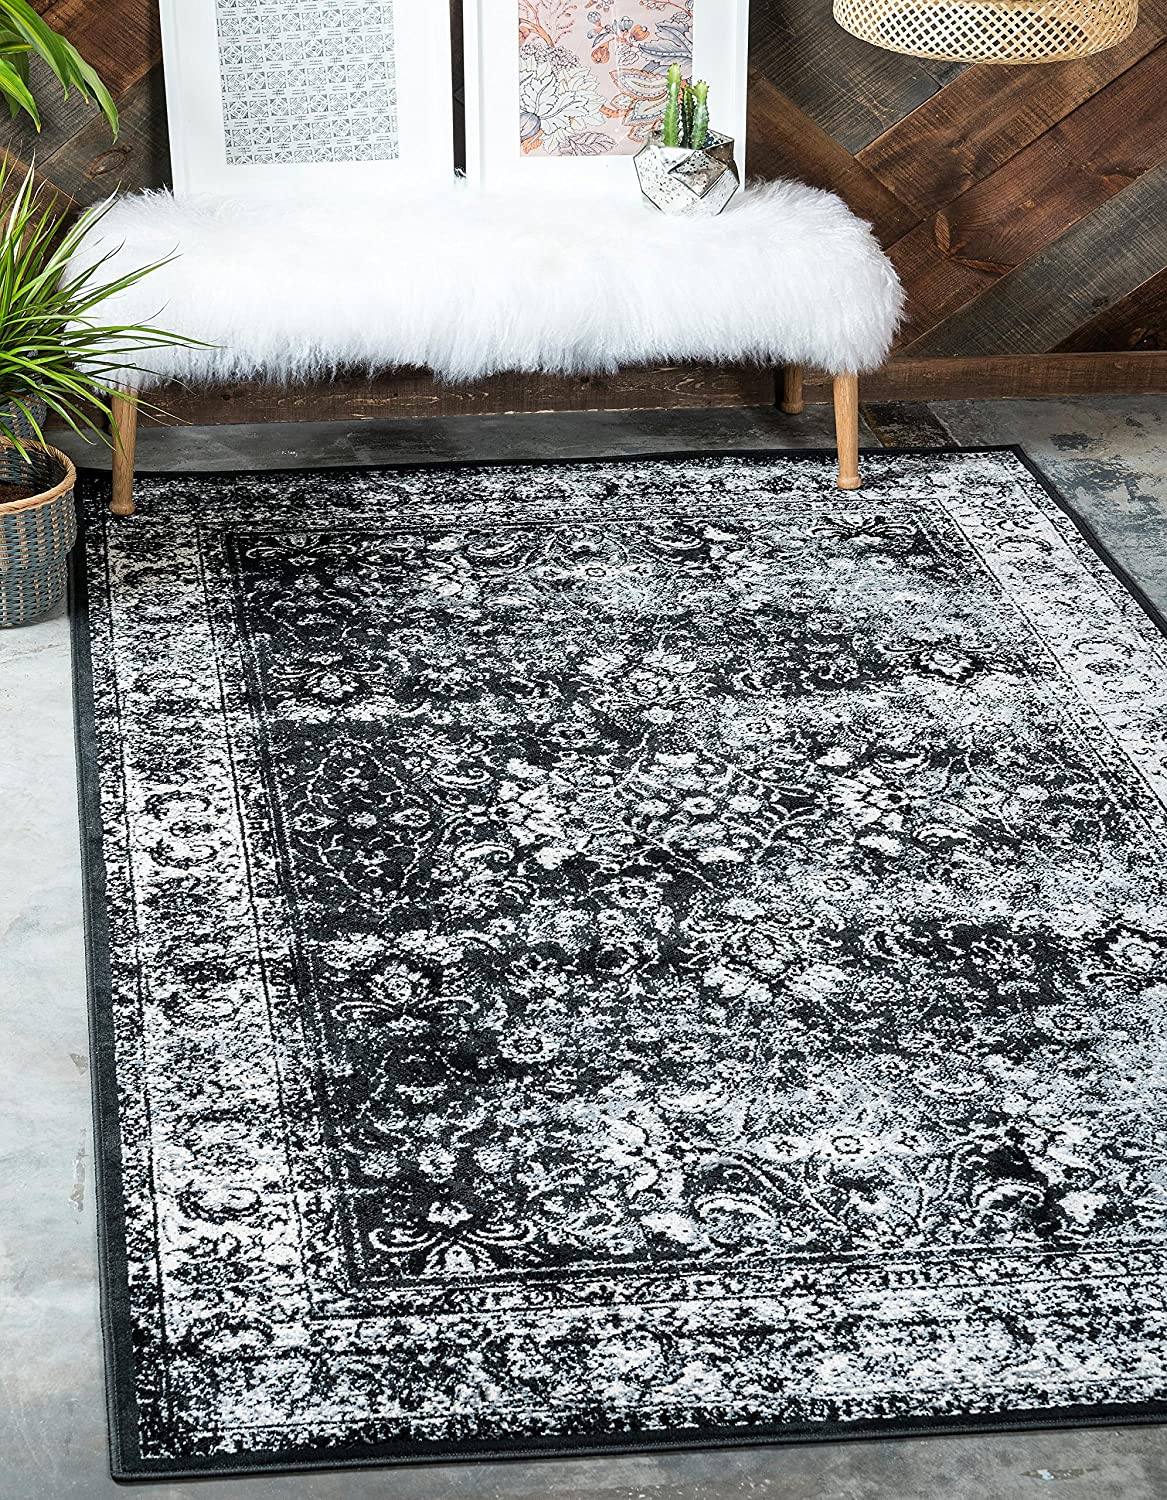 Unique Loom Imperial Collection Modern Traditional Vintage Distressed Light Gray Area Rug (2' 0 x 3' 0)